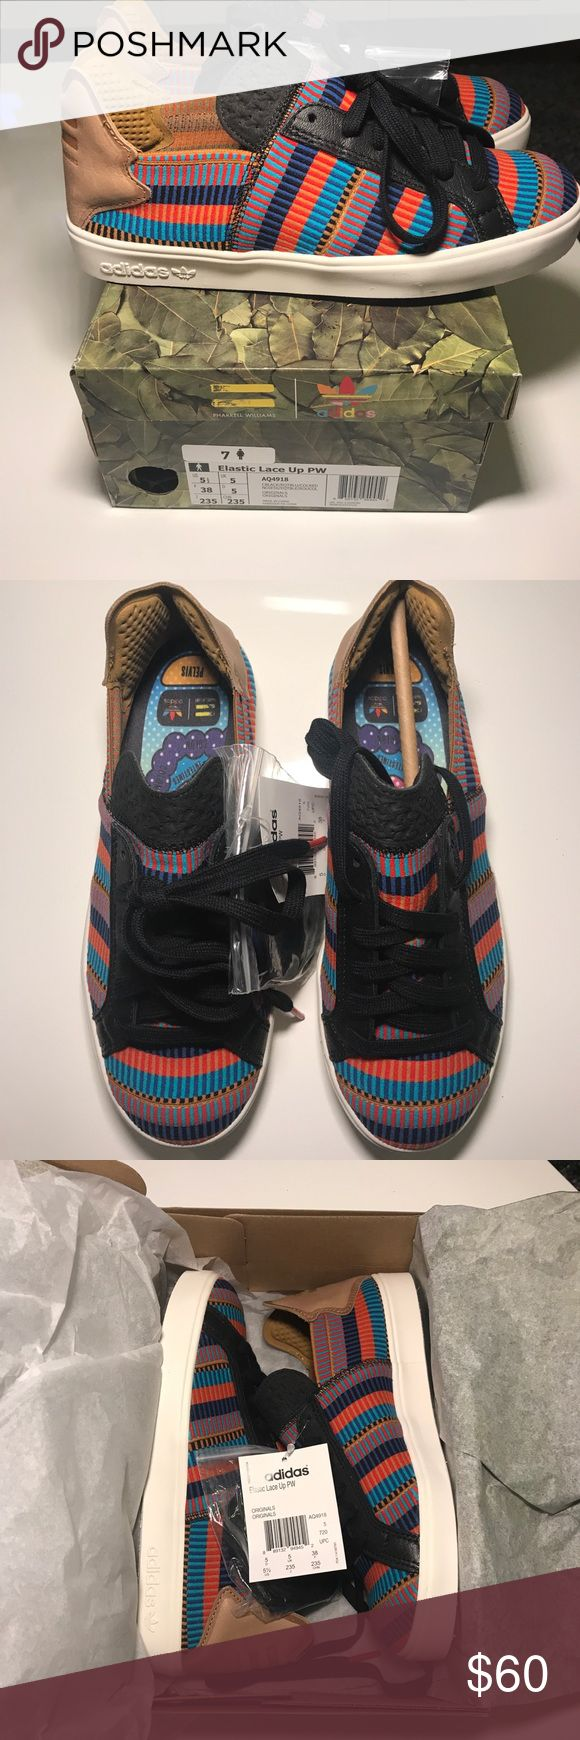 Adidas X Pharrell Williams NWT Adidas Consortium X Pharrell Williams Elastic Lace Up Sneaker - Pink Beach - women's 7, men's 5 1/2, UK 5  New in box with tags and extra pair of laces.  Never been worn. adidas Shoes Sneakers